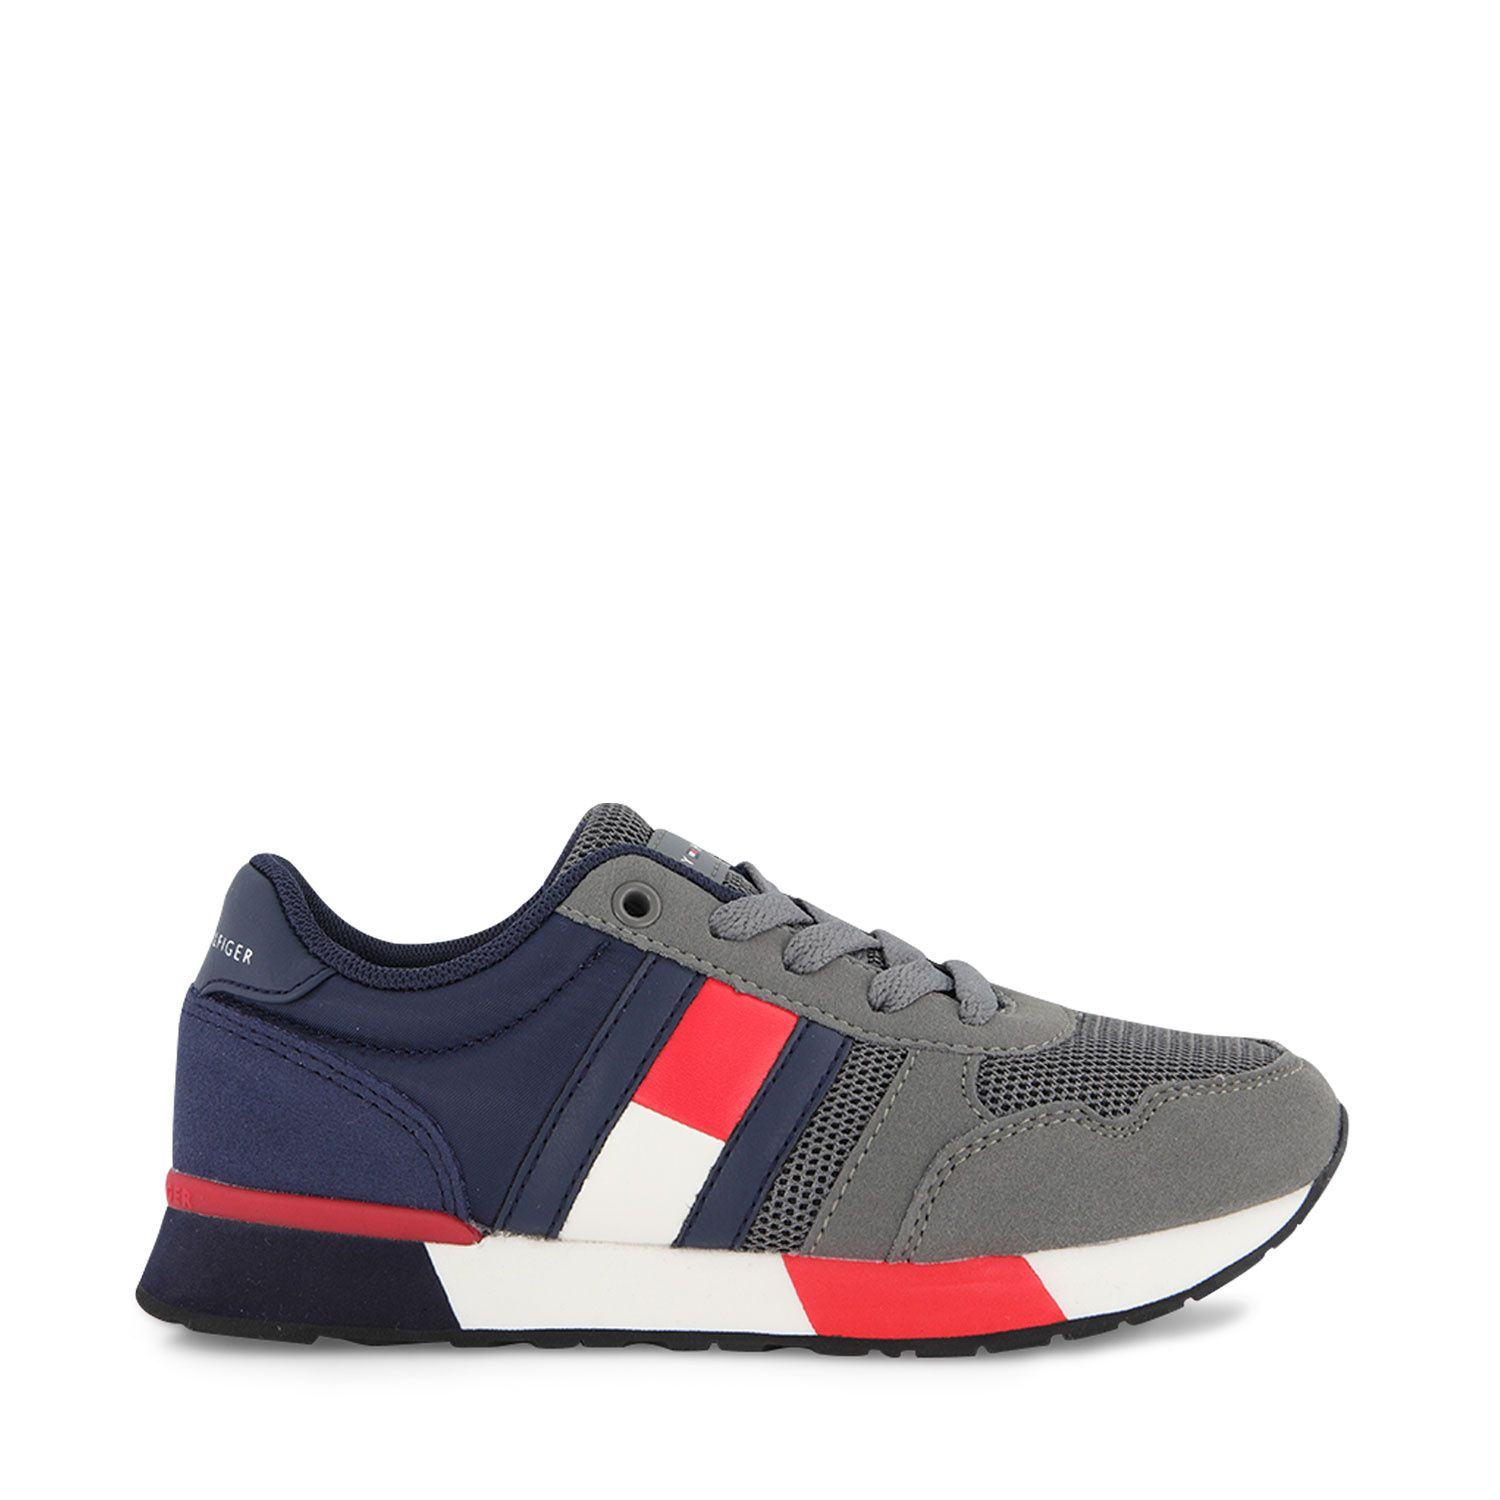 Picture of Tommy Hilfiger 30933 kids sneakers grey